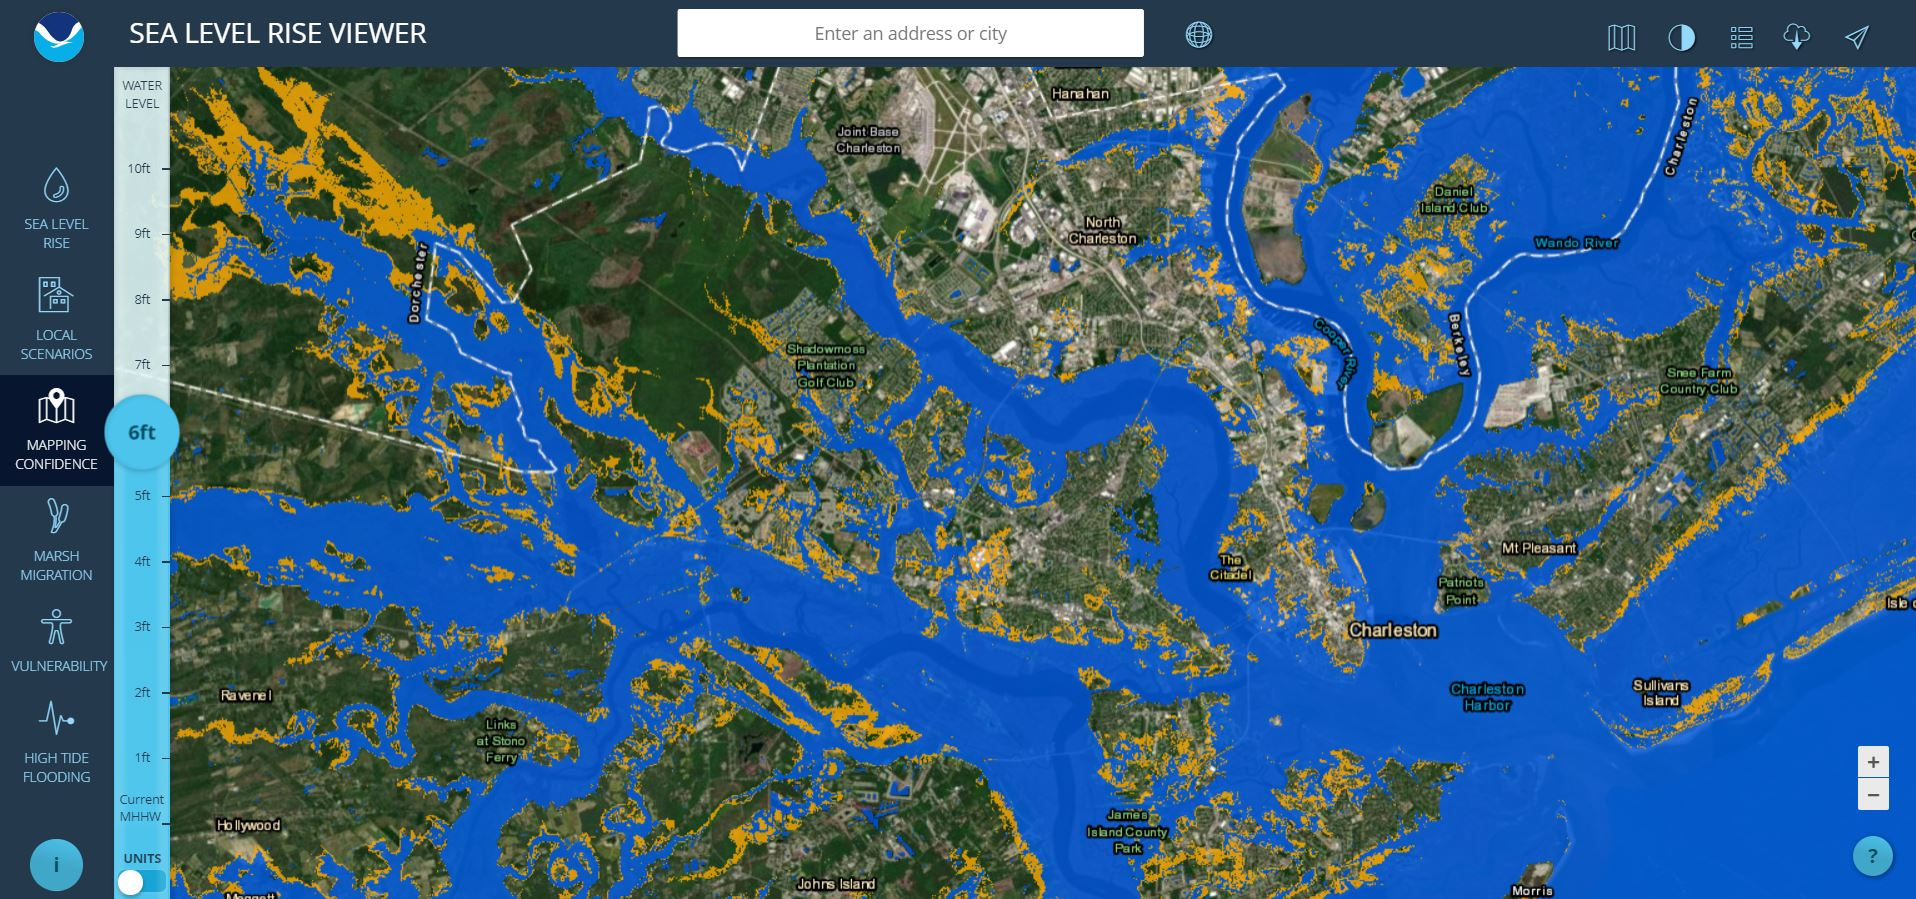 Sea Level Rise Viewer - Us sea level rise map